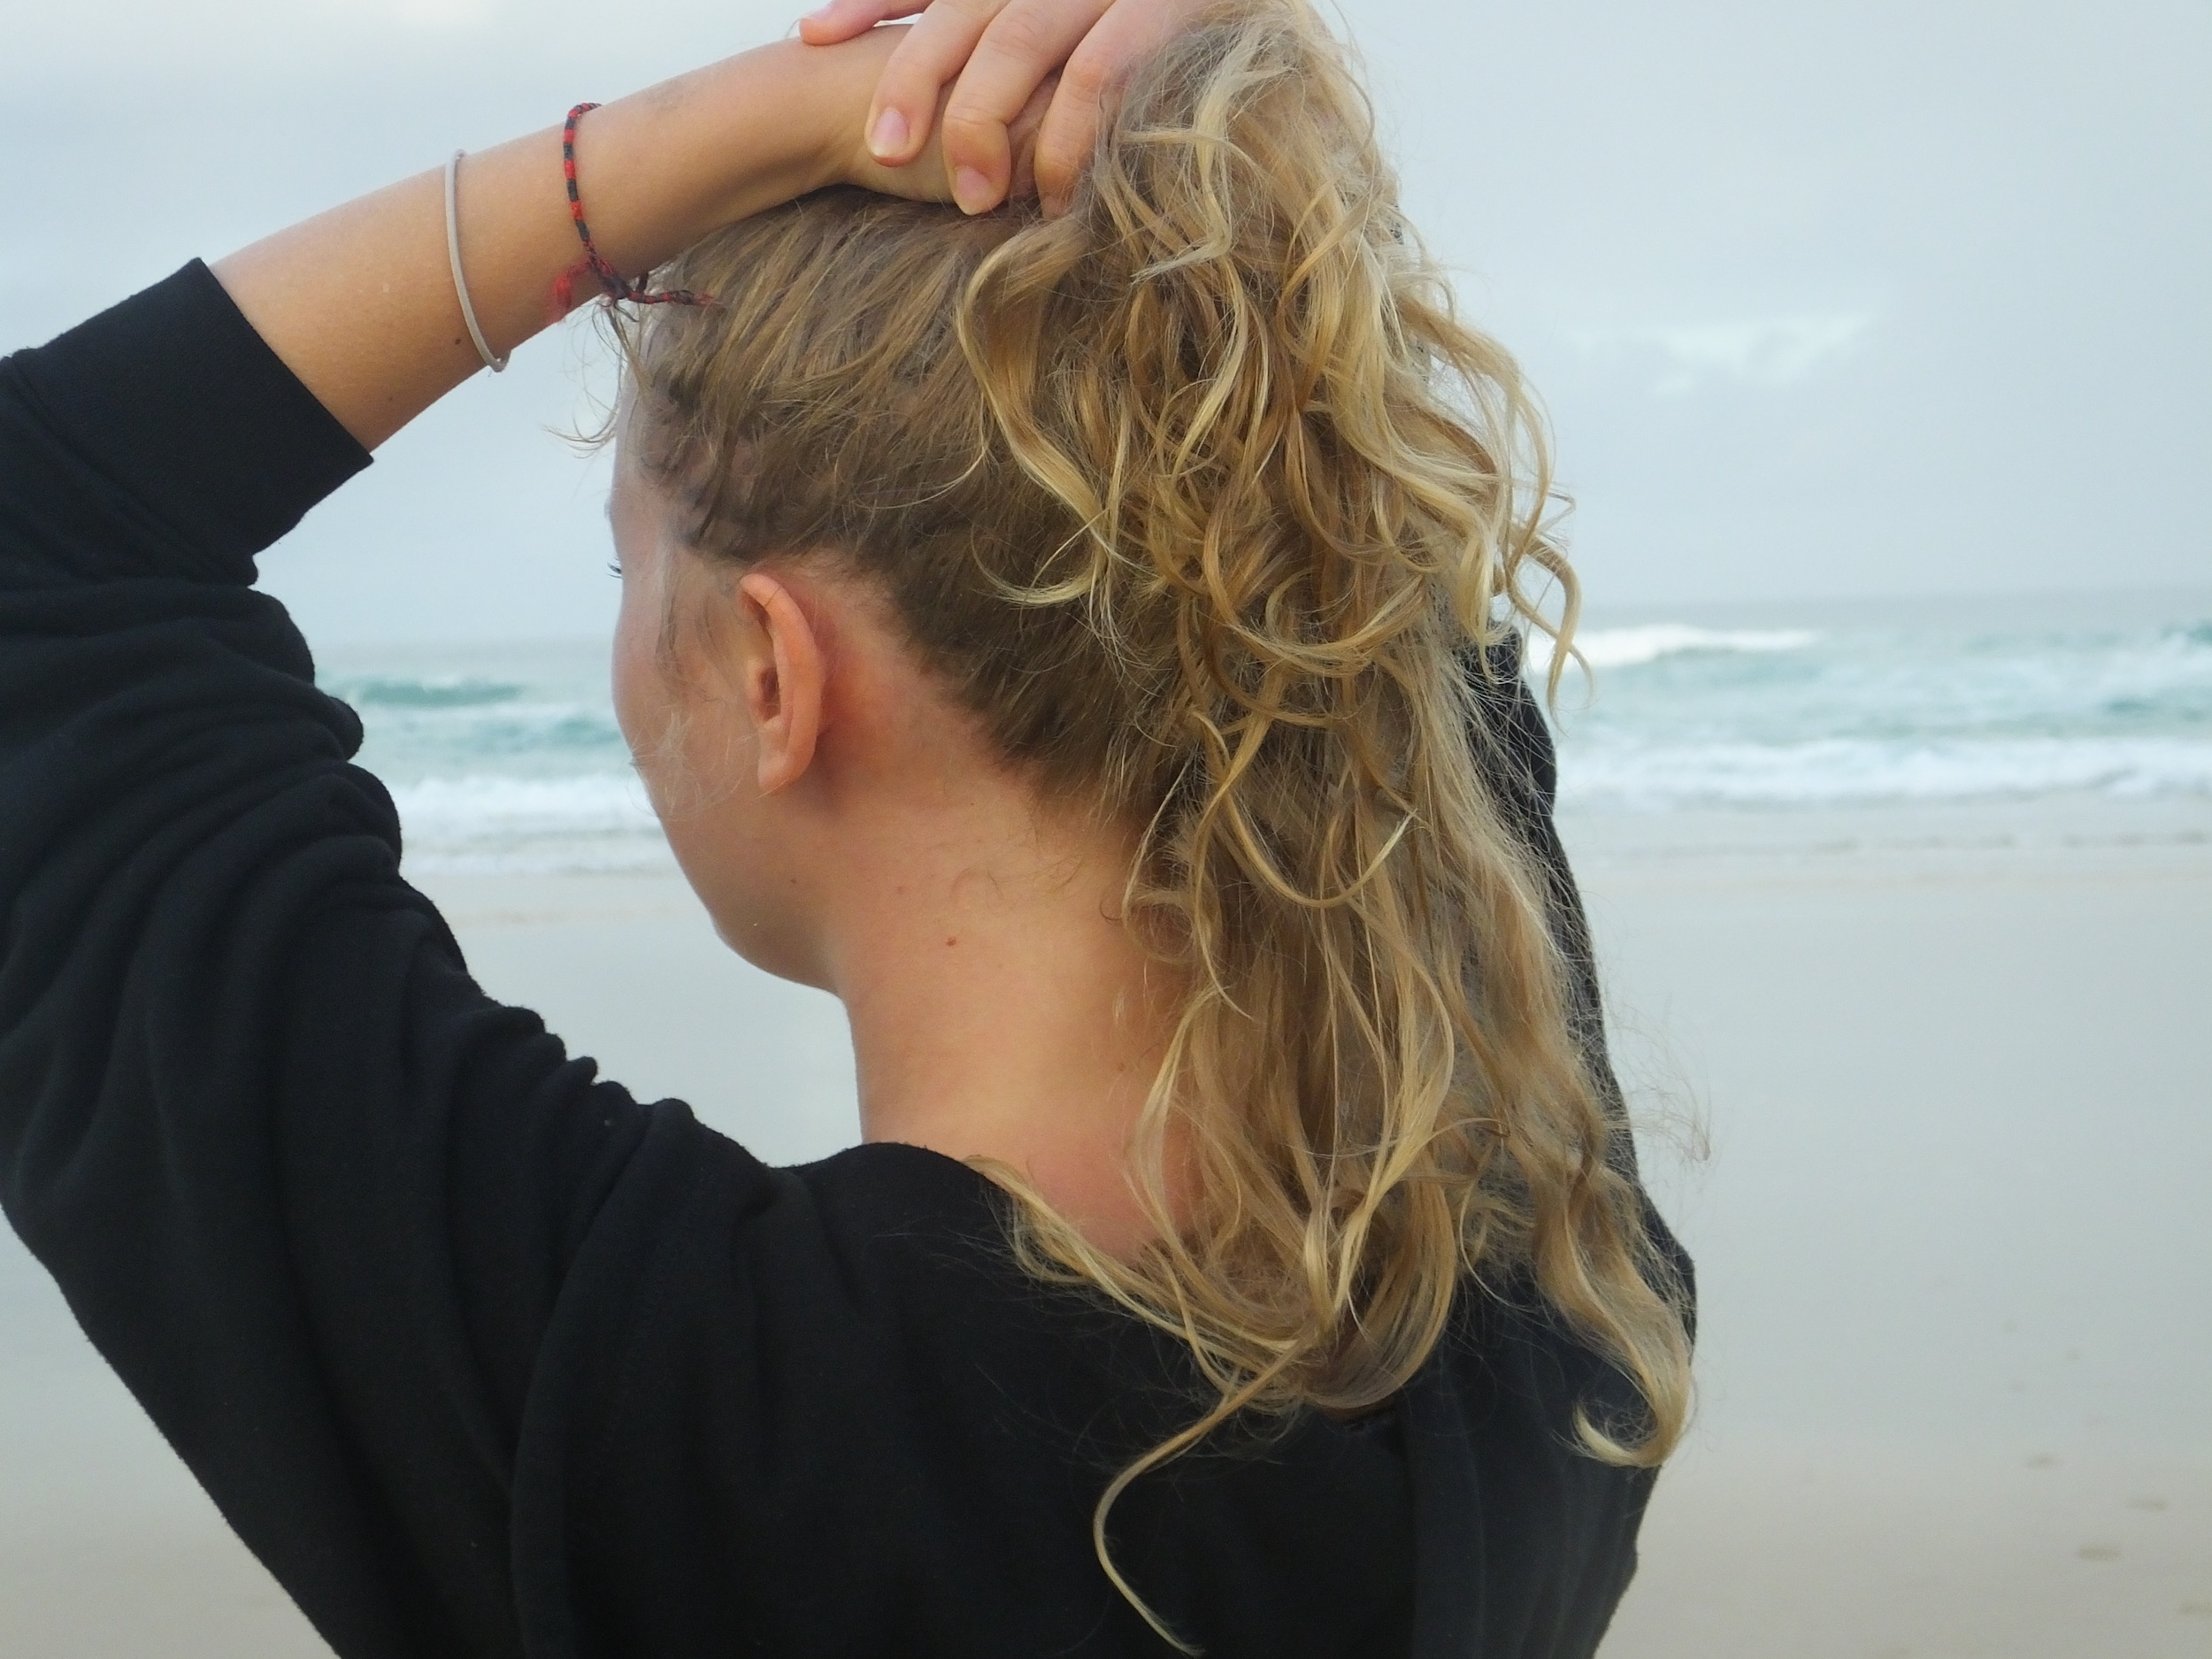 woman holding her hair up